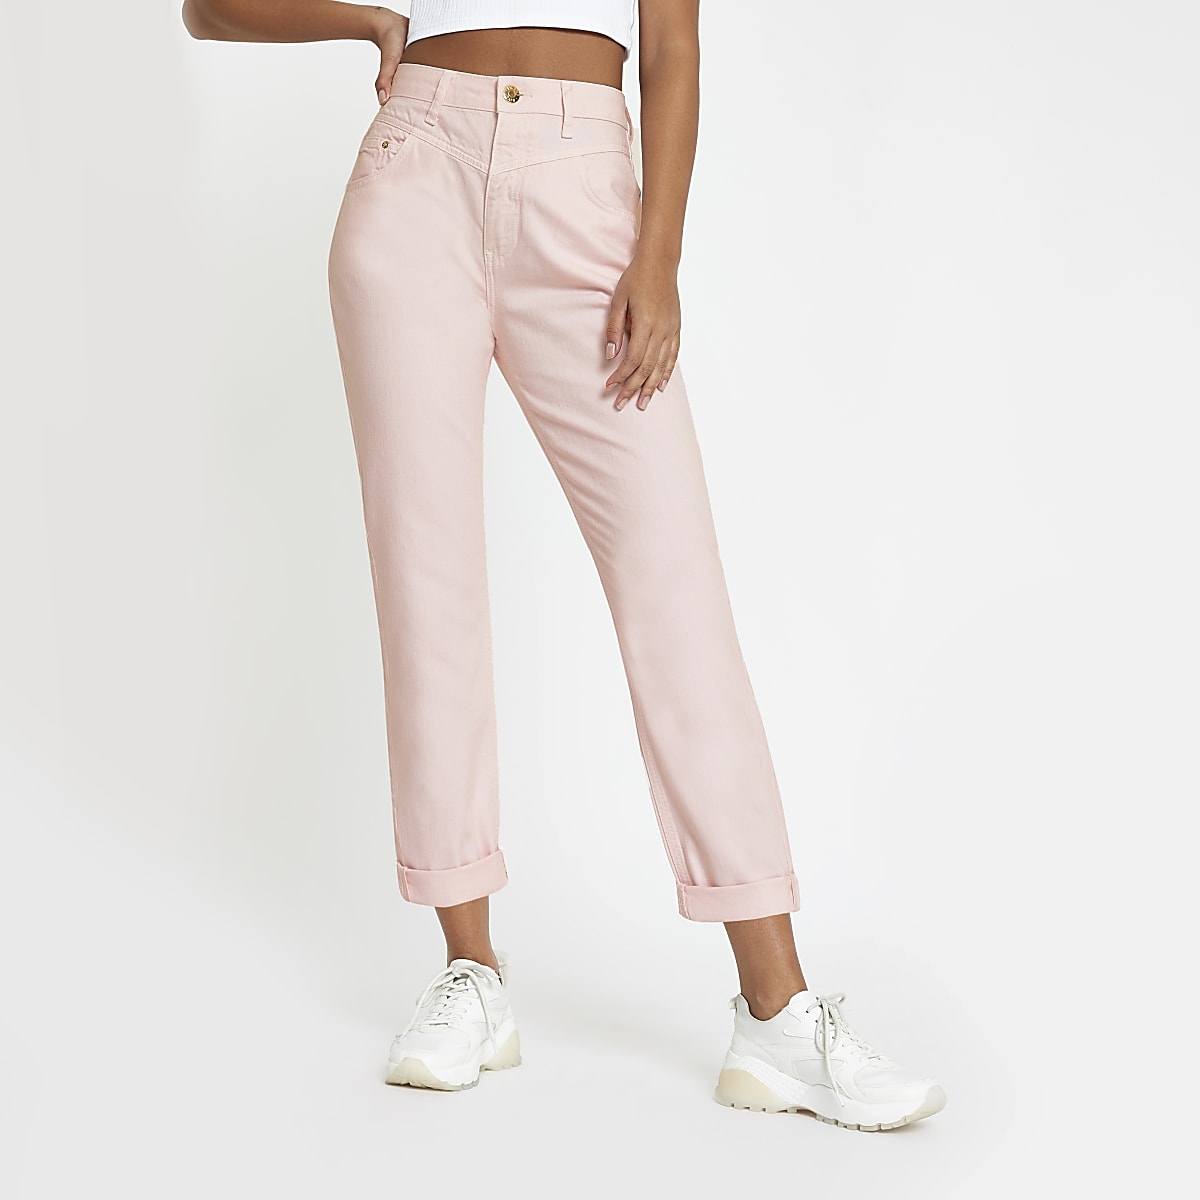 273e81c63d1f7e Light pink Mom fit high rise jeans - Mom Jeans - Jeans - women